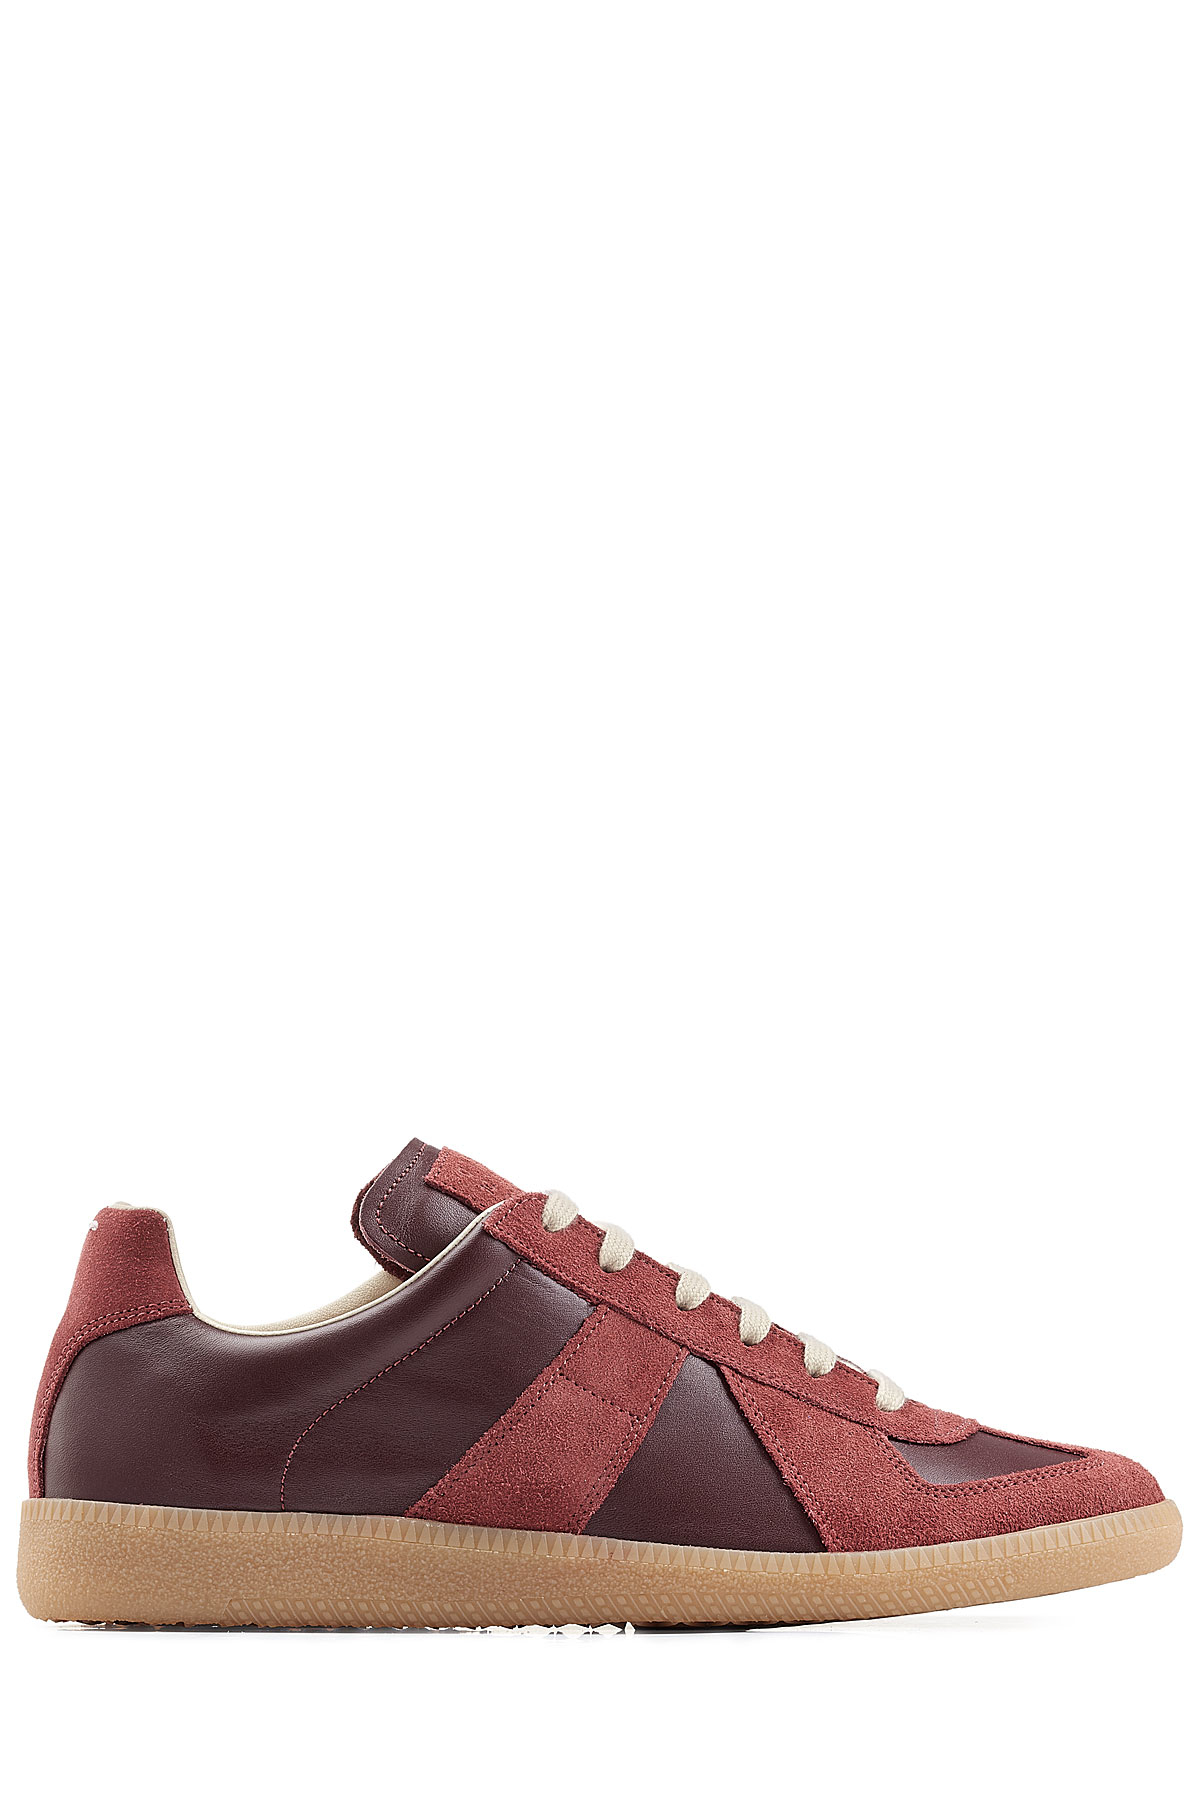 Lyst maison margiela future suede and leather low top for A la maison lotion